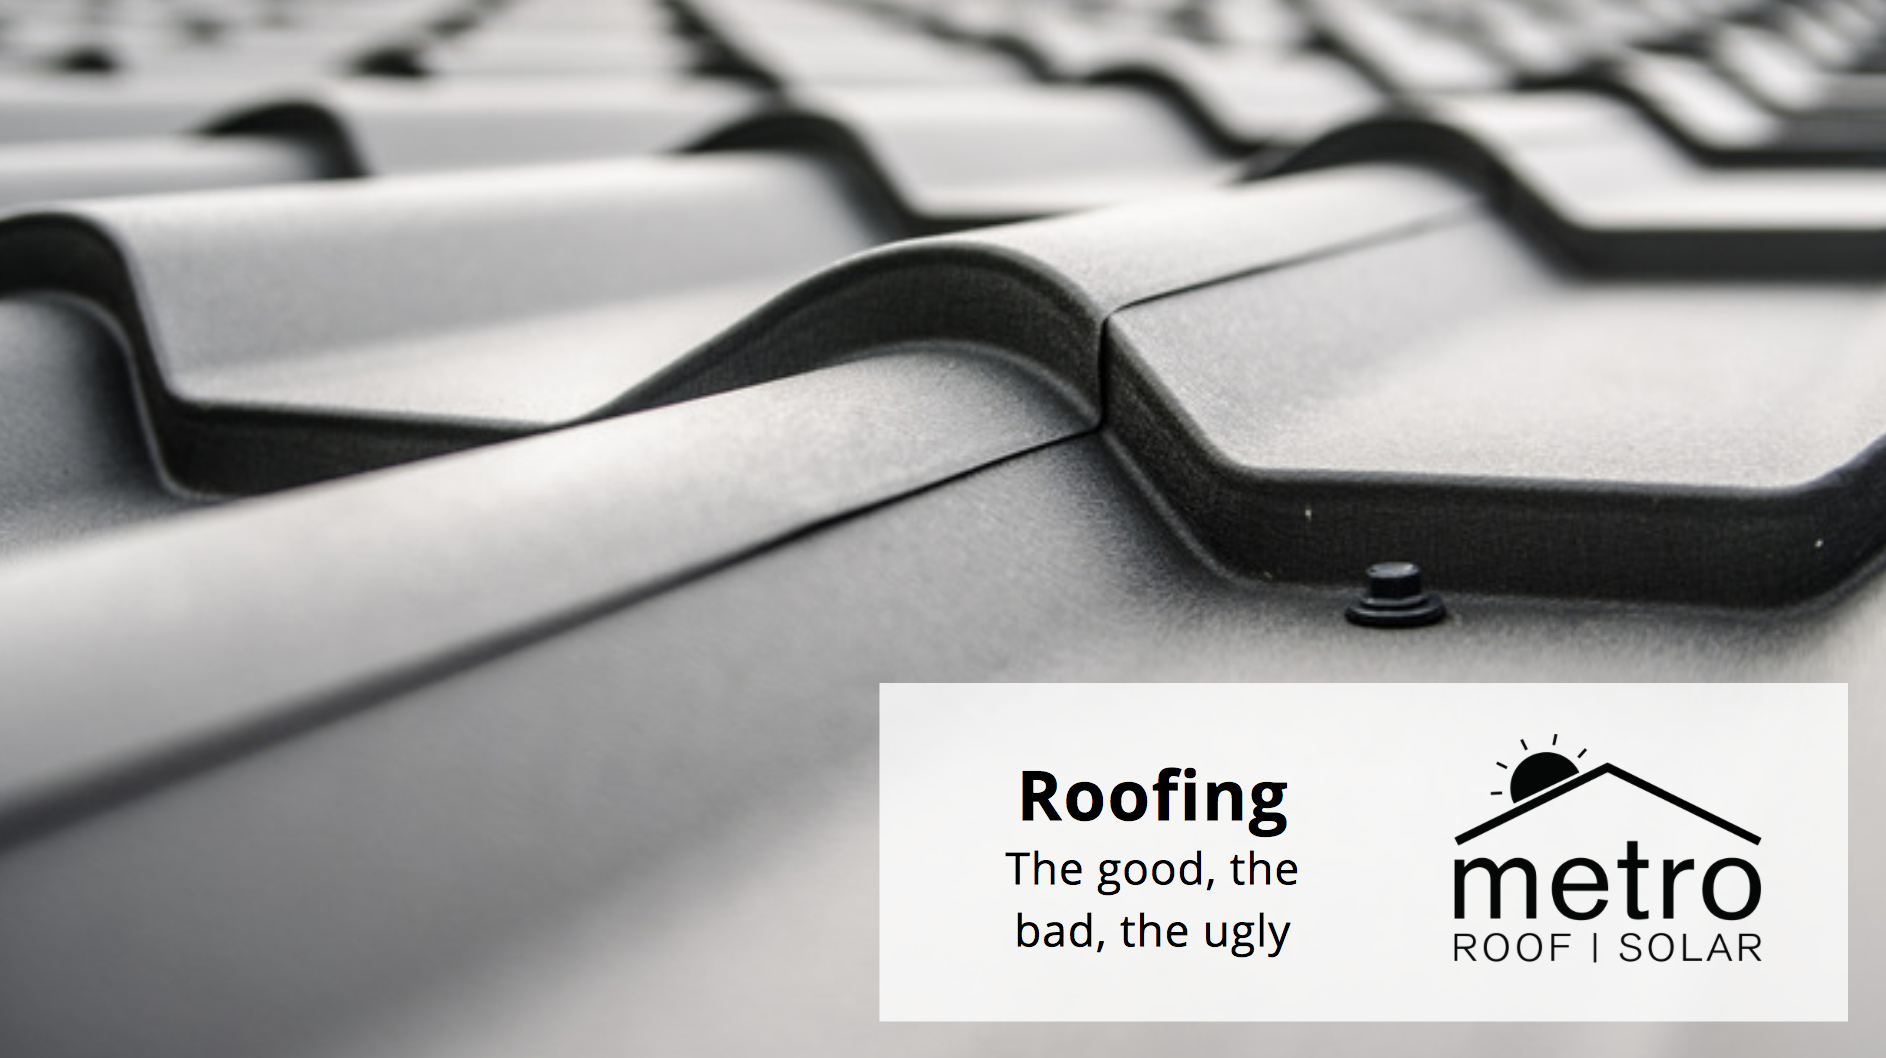 Roofing: the good, the bad, the ugly